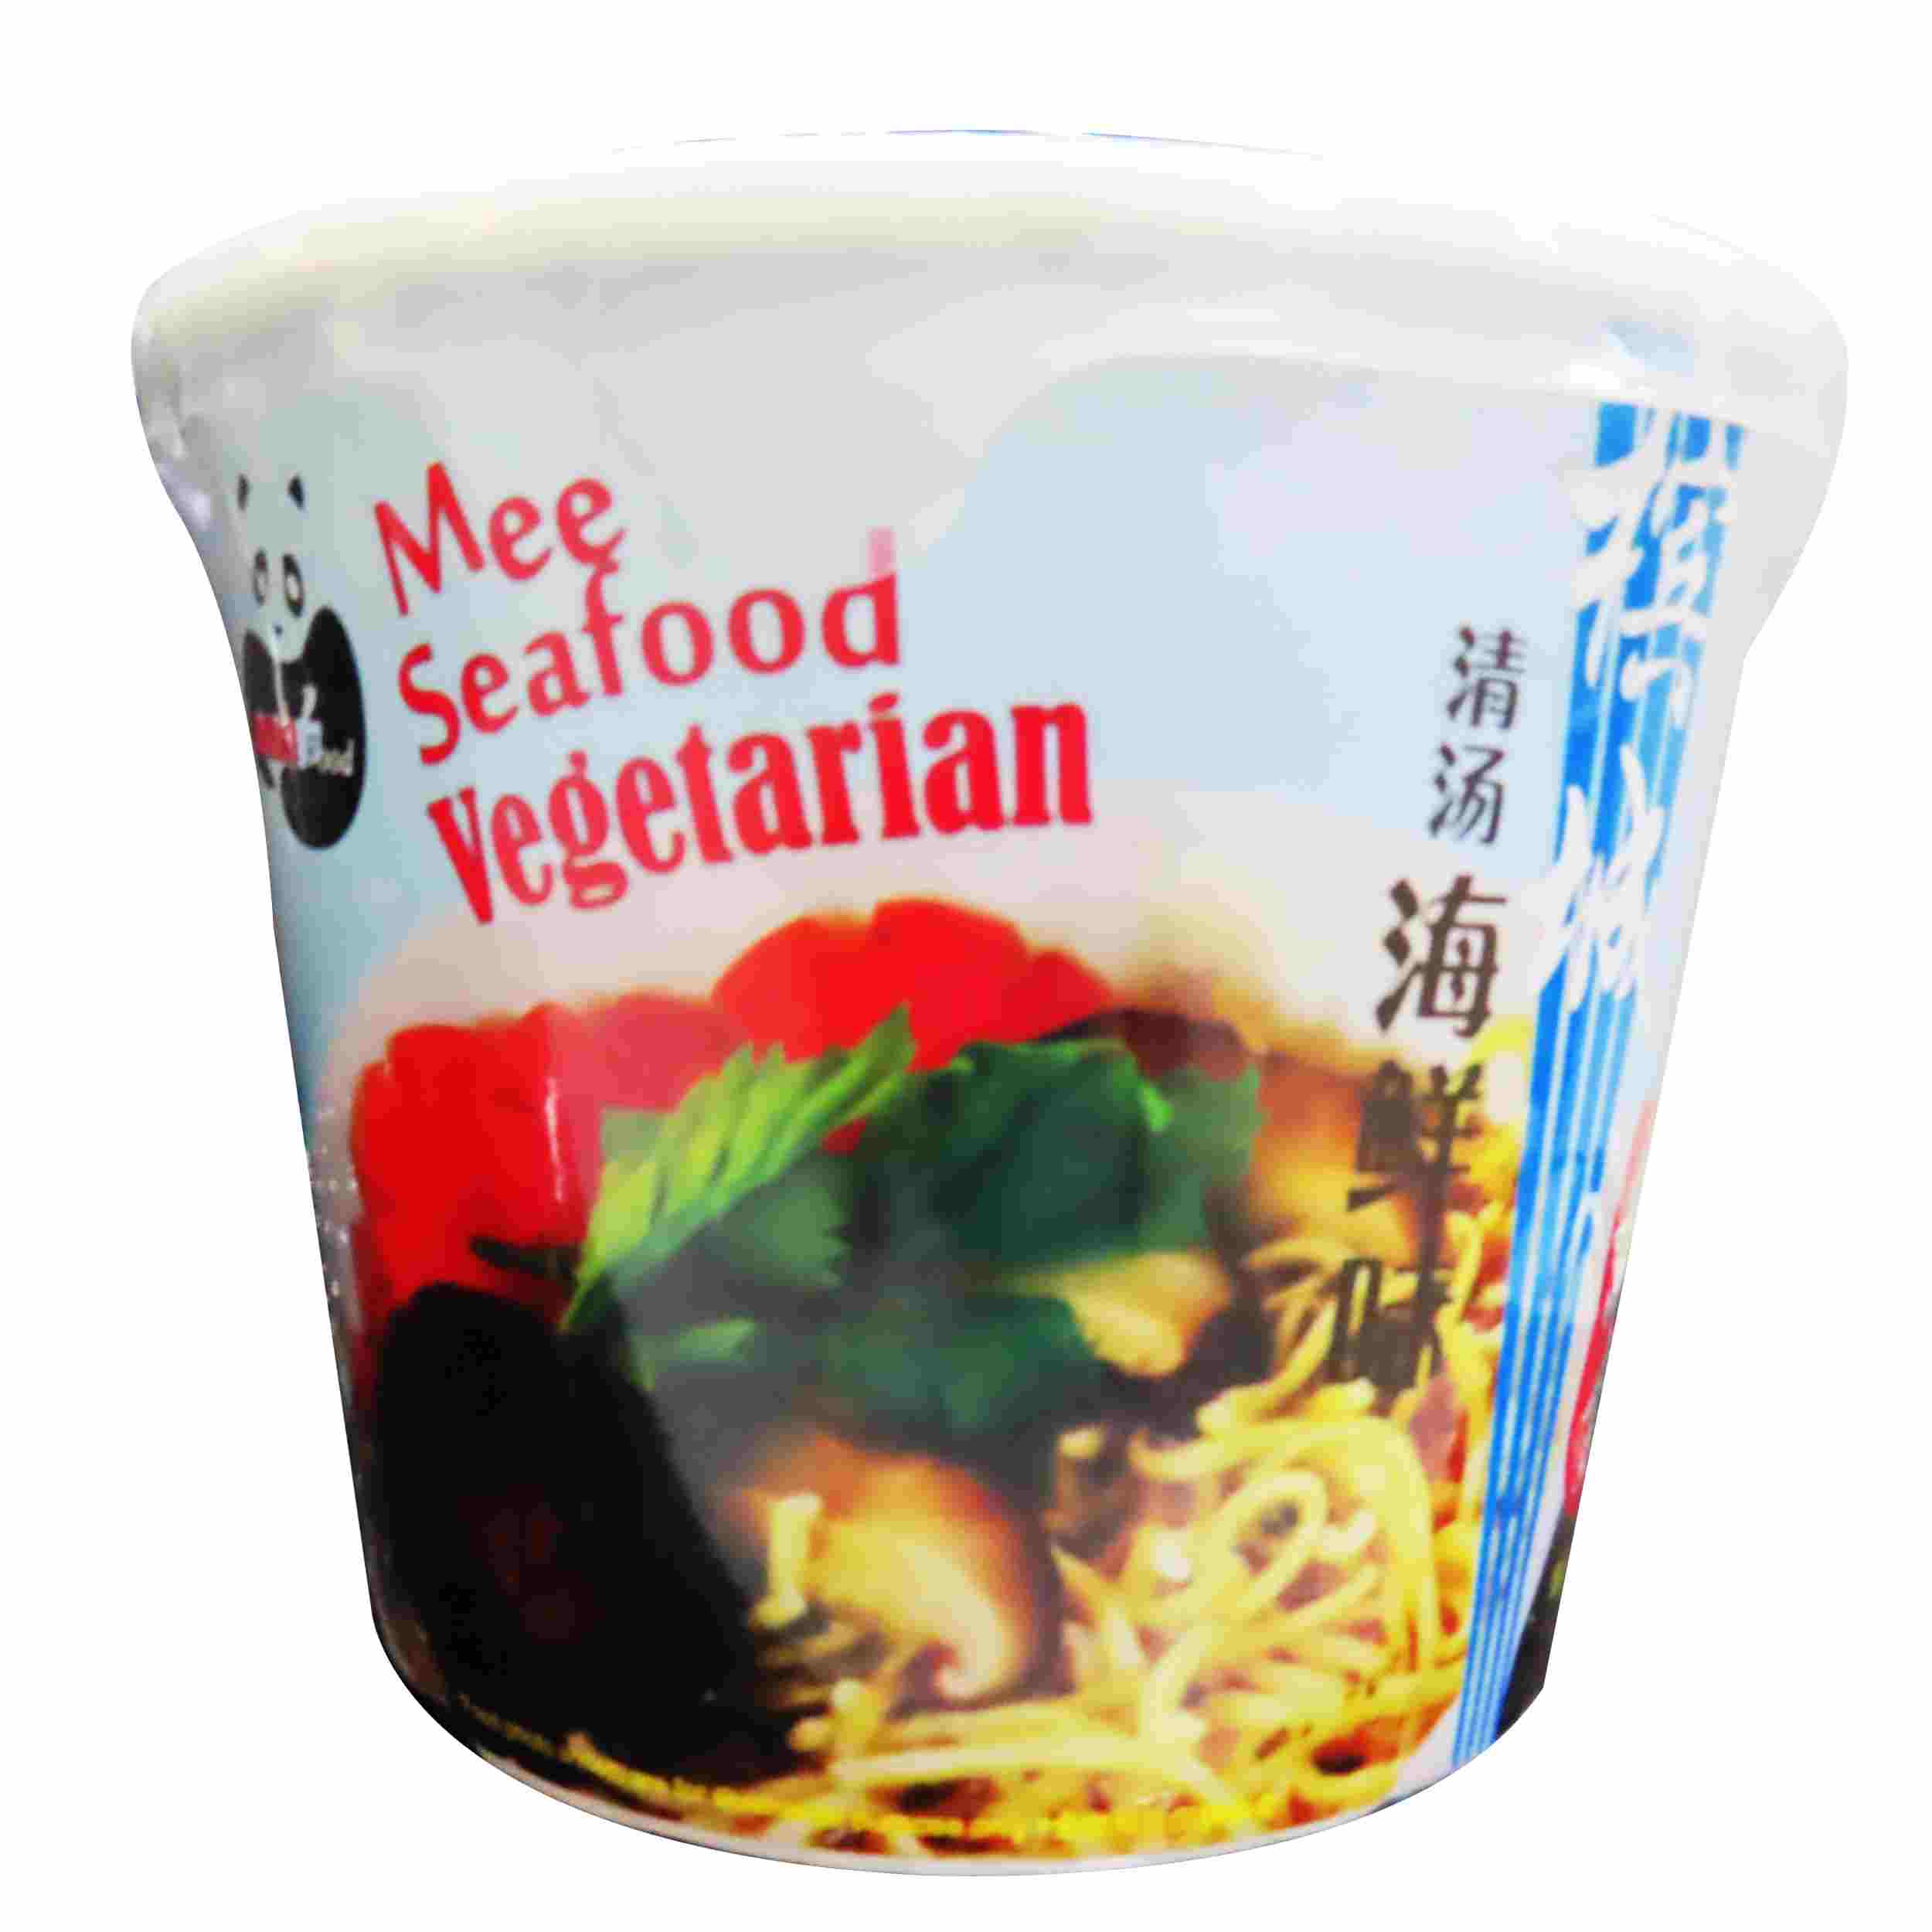 Image Omai Seafood Cup Noodle 槟城清汤海鲜味杯面 95grams